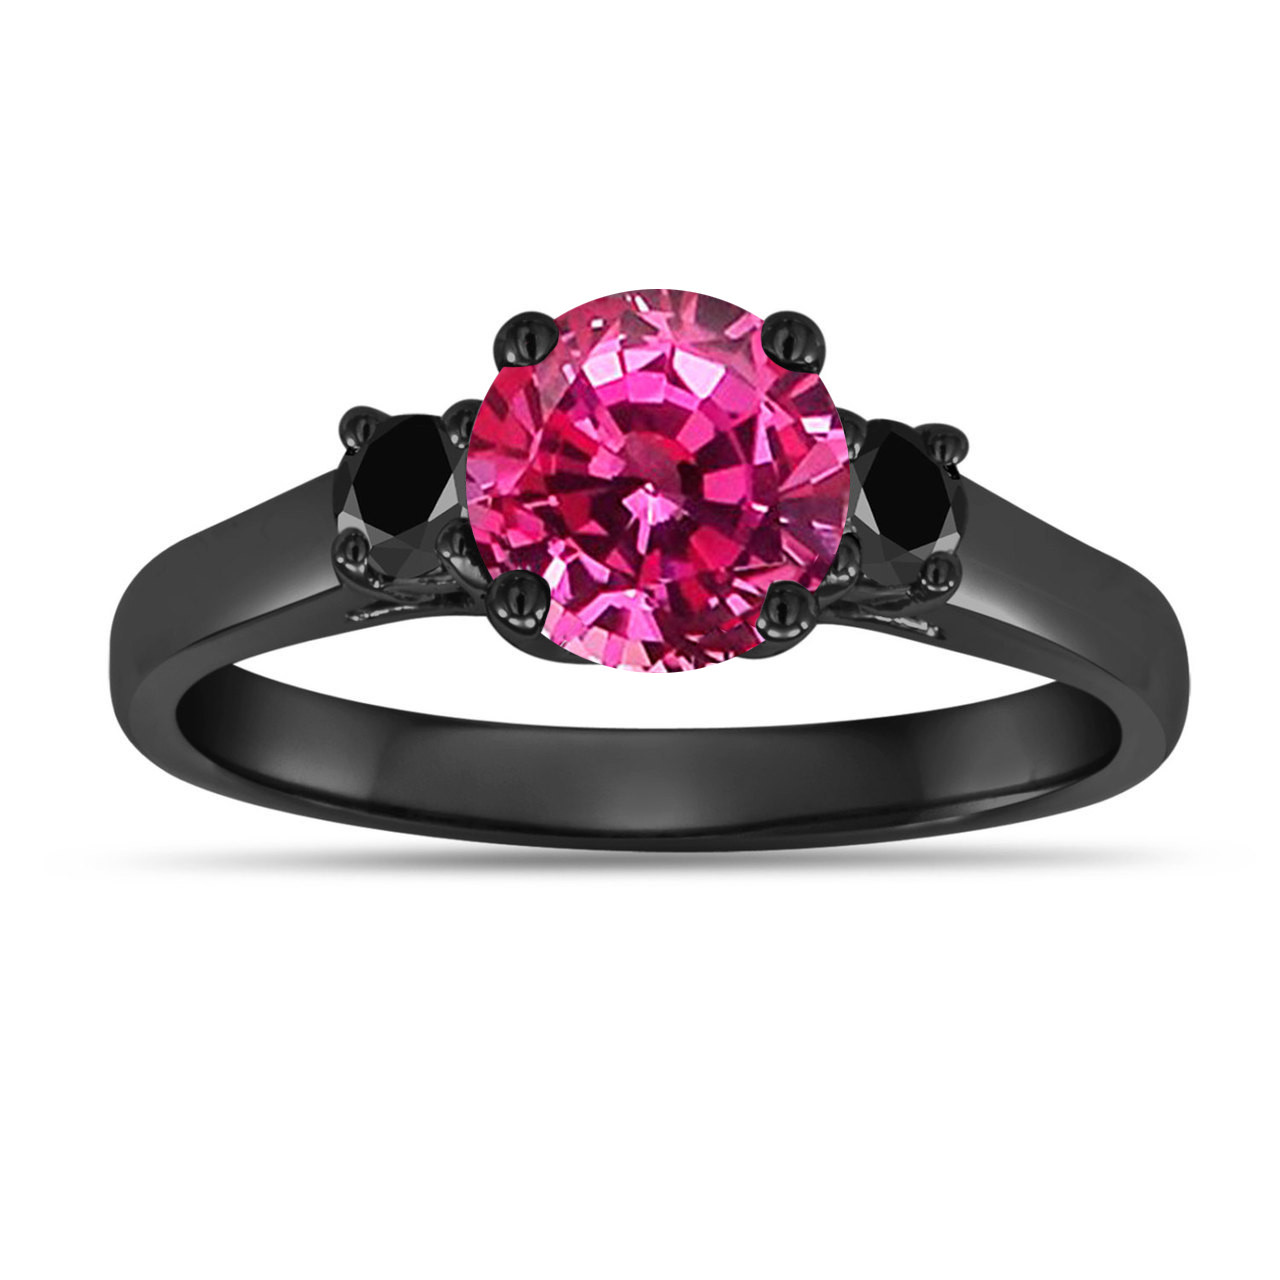 Black And Pink Wedding Rings: 1.32 Carat Pink Sapphire Three Stone Engagement Ring, With